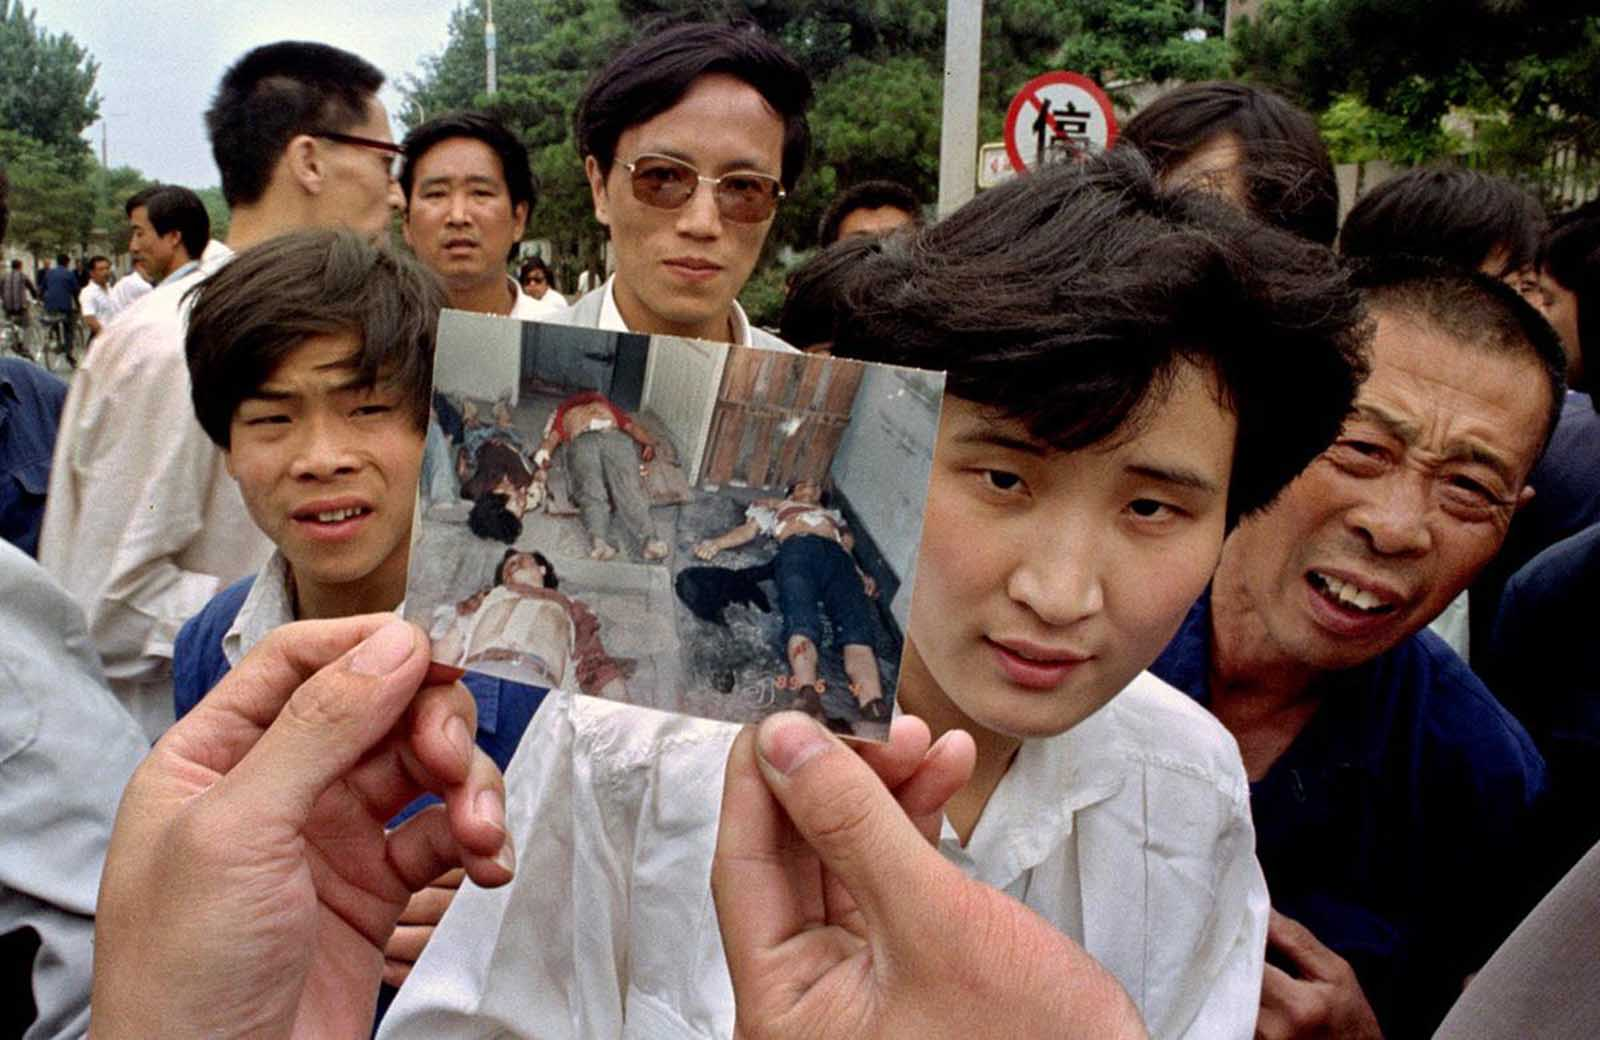 People on Chang'an Boulevard in Beijing hold up a photo that they described as dead victims of the violence against pro-democracy protesters on Tiananmen Square, on June 5, 1989.